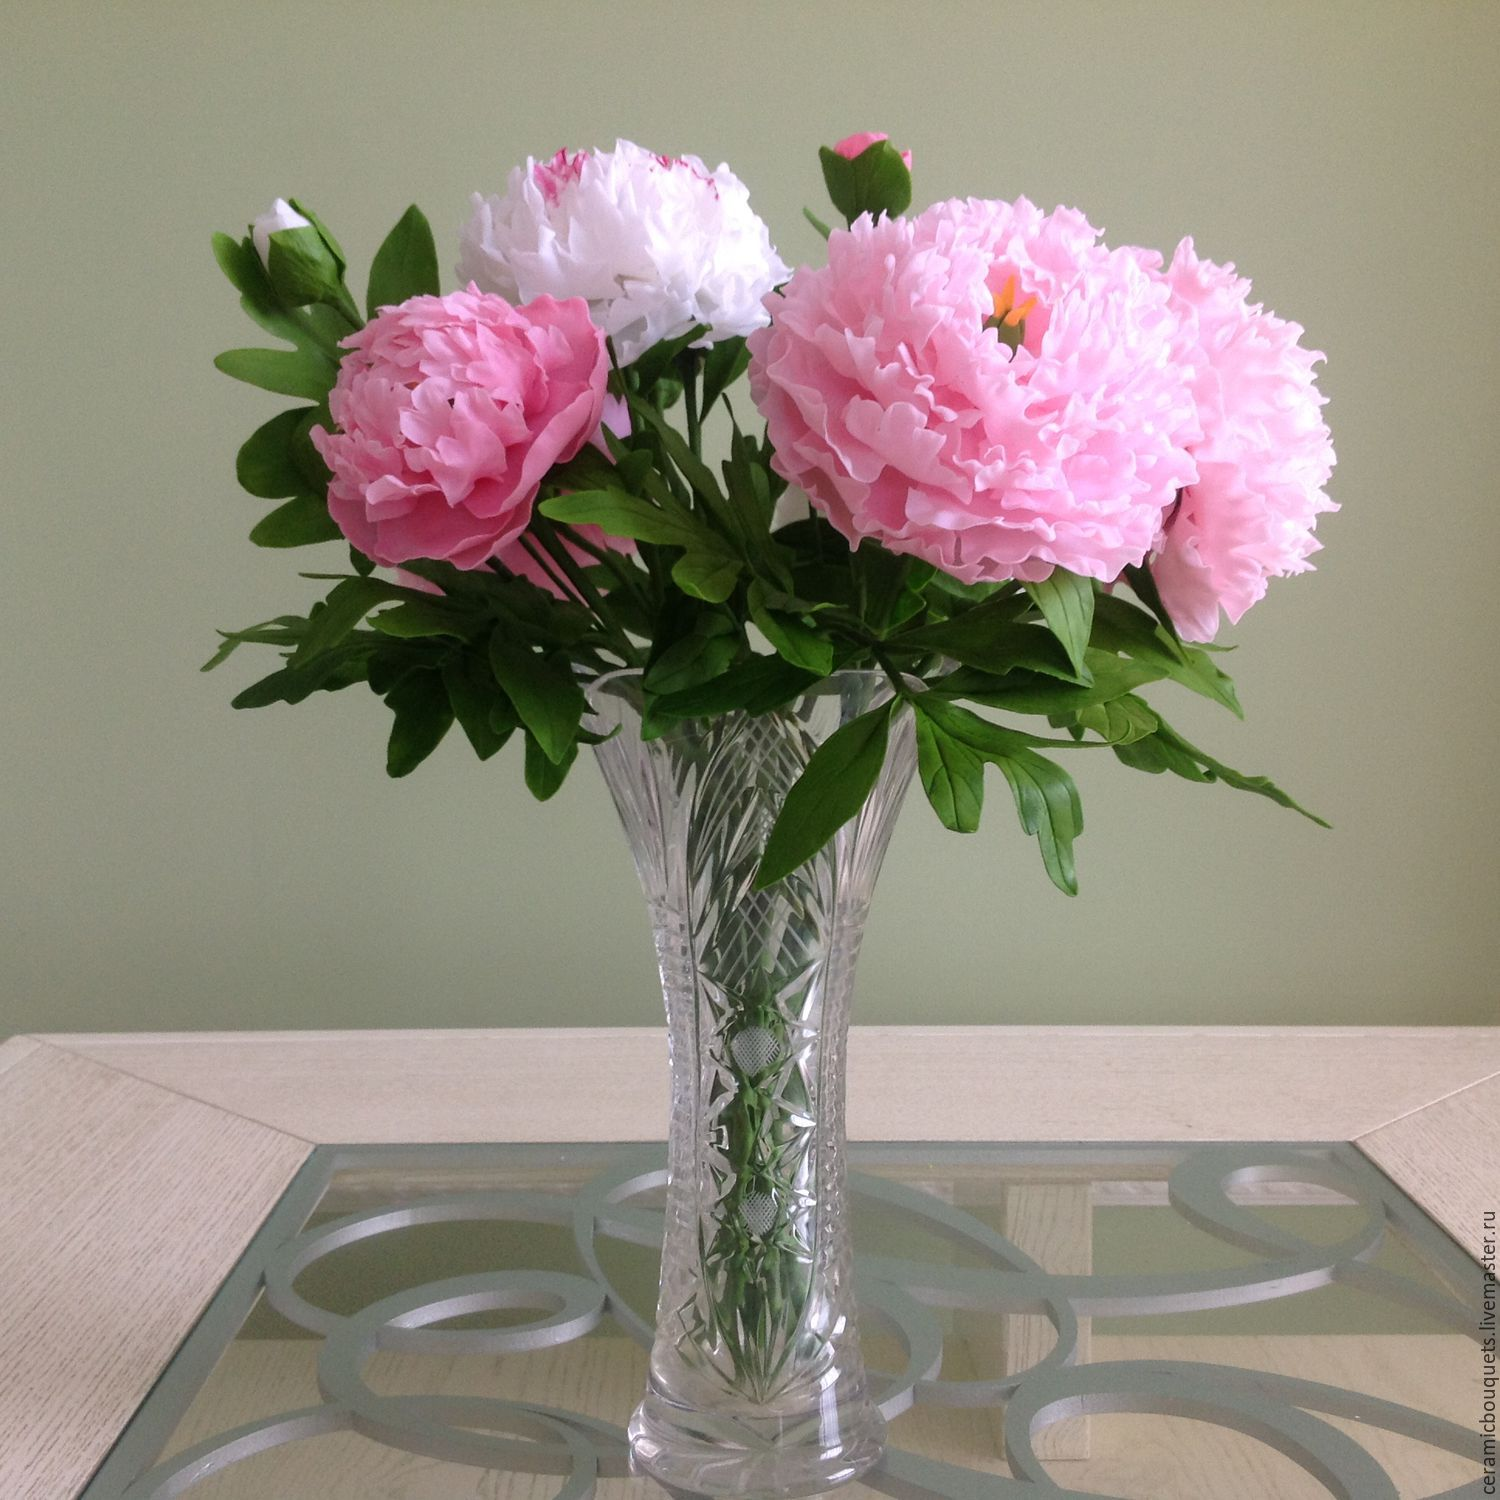 Captivating Order Peonies In A Gift. Ceramicbouquets. Livemaster. Pink, Gift